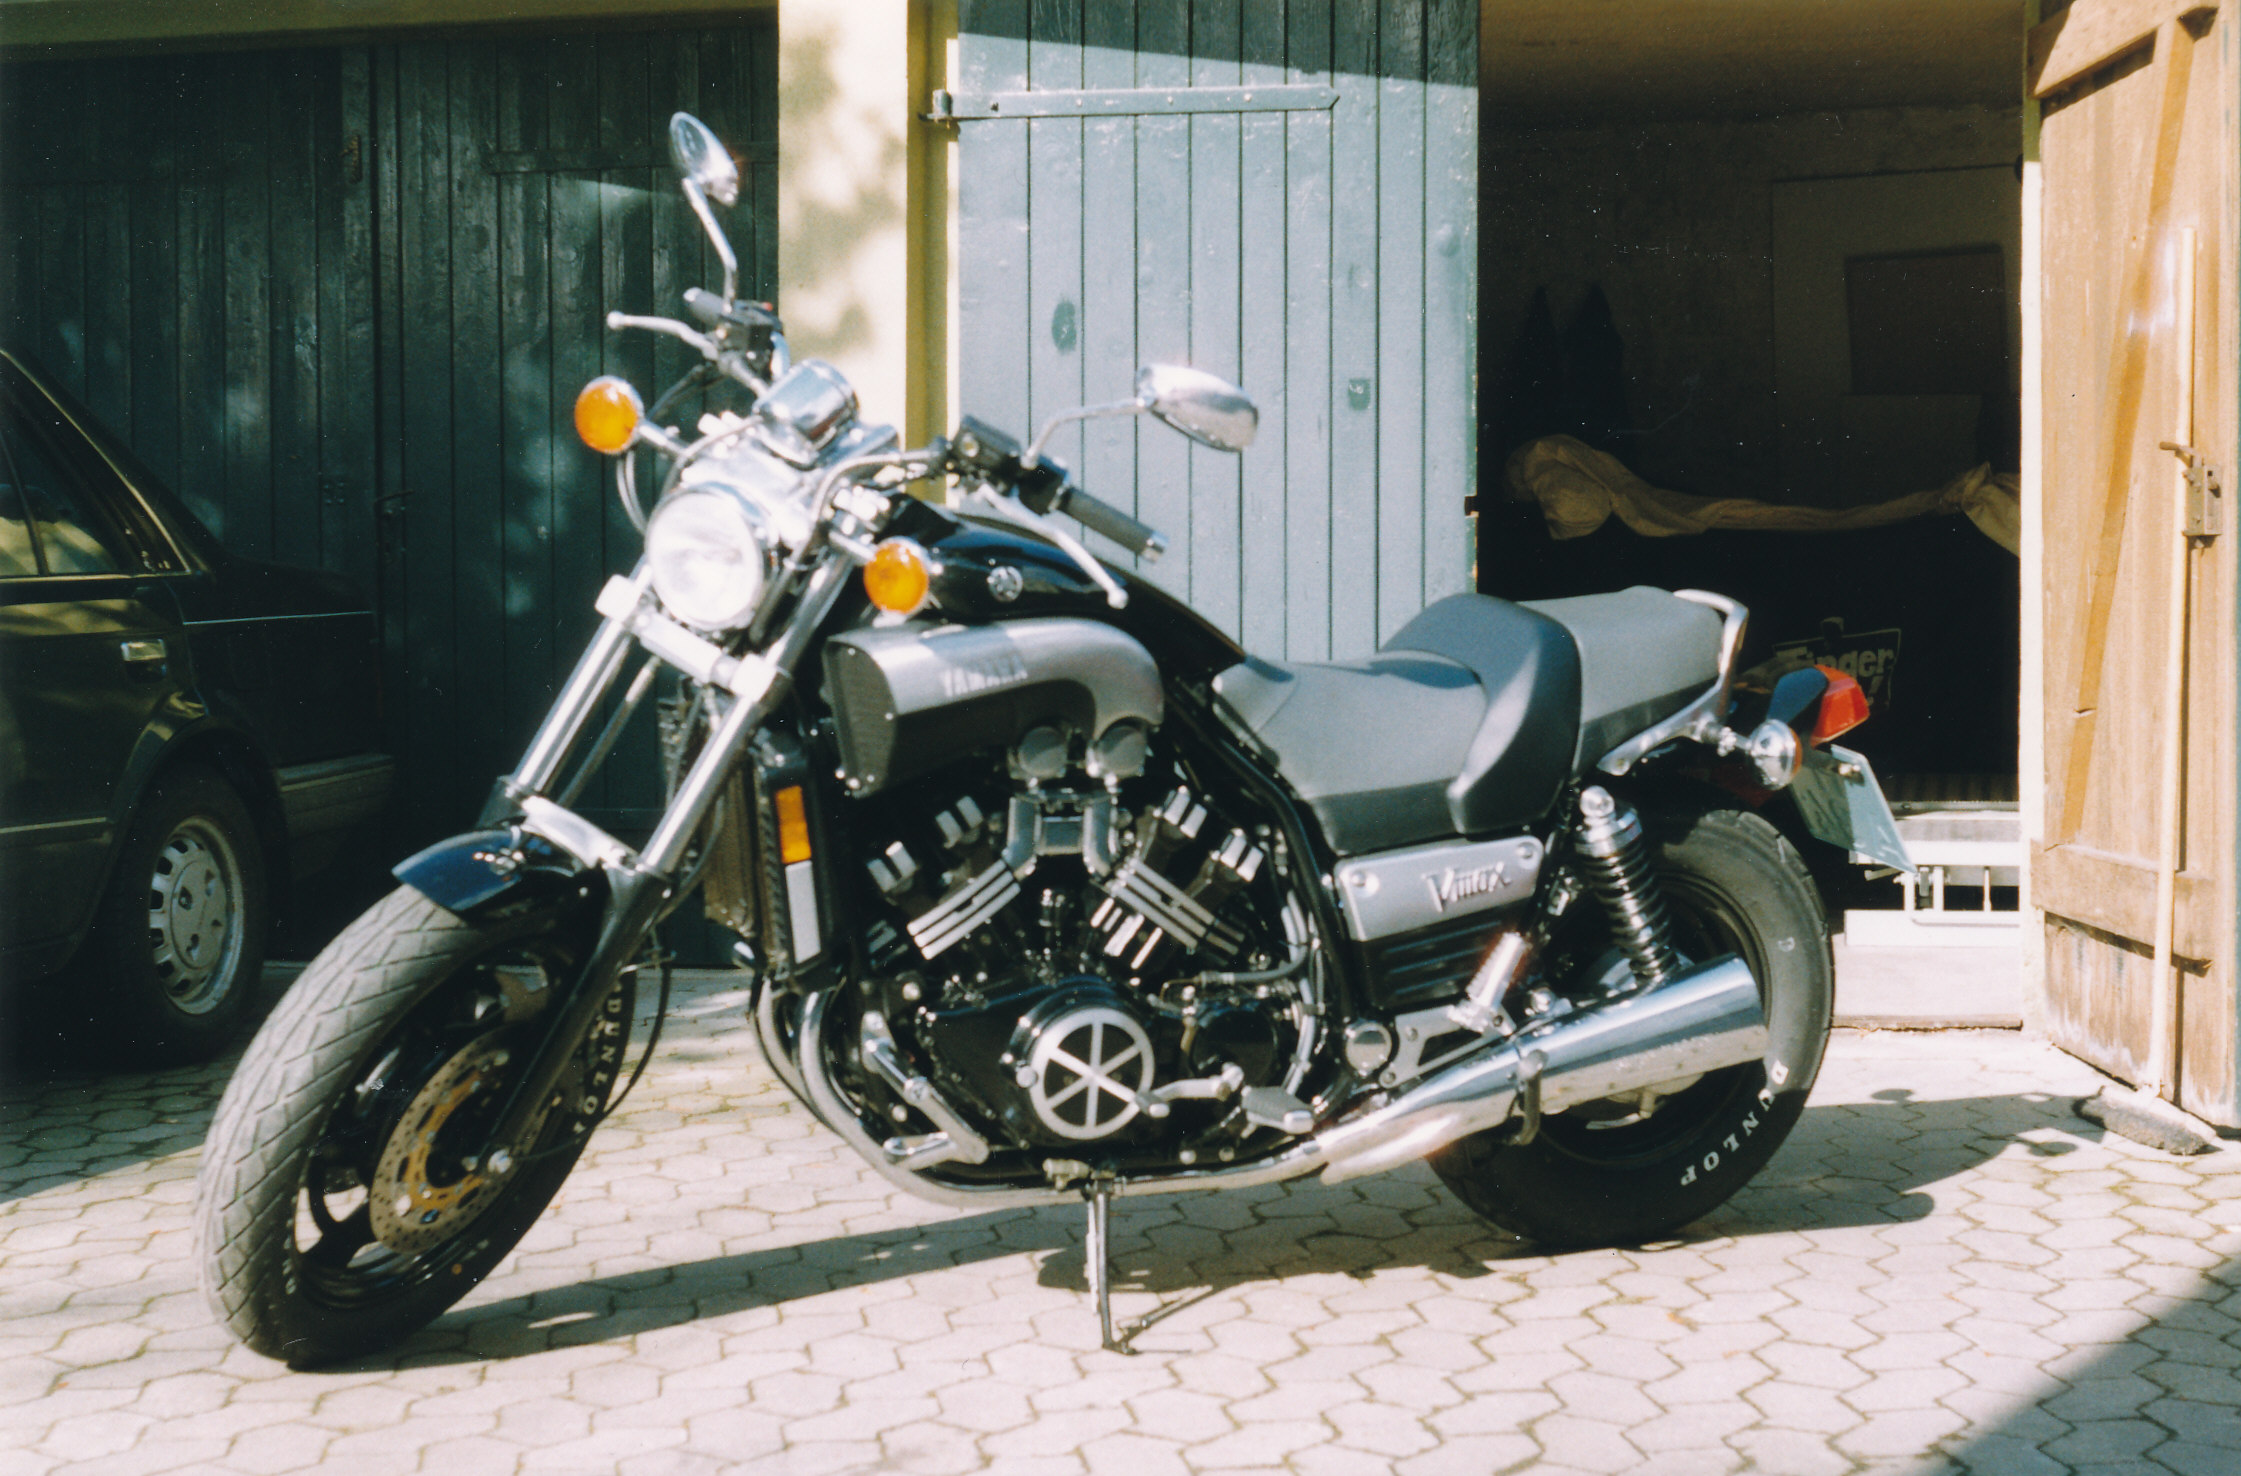 Yamaha Vmax Wikipedia Home Data Cable Wiring Together With Harley Davidson Brake Cables And